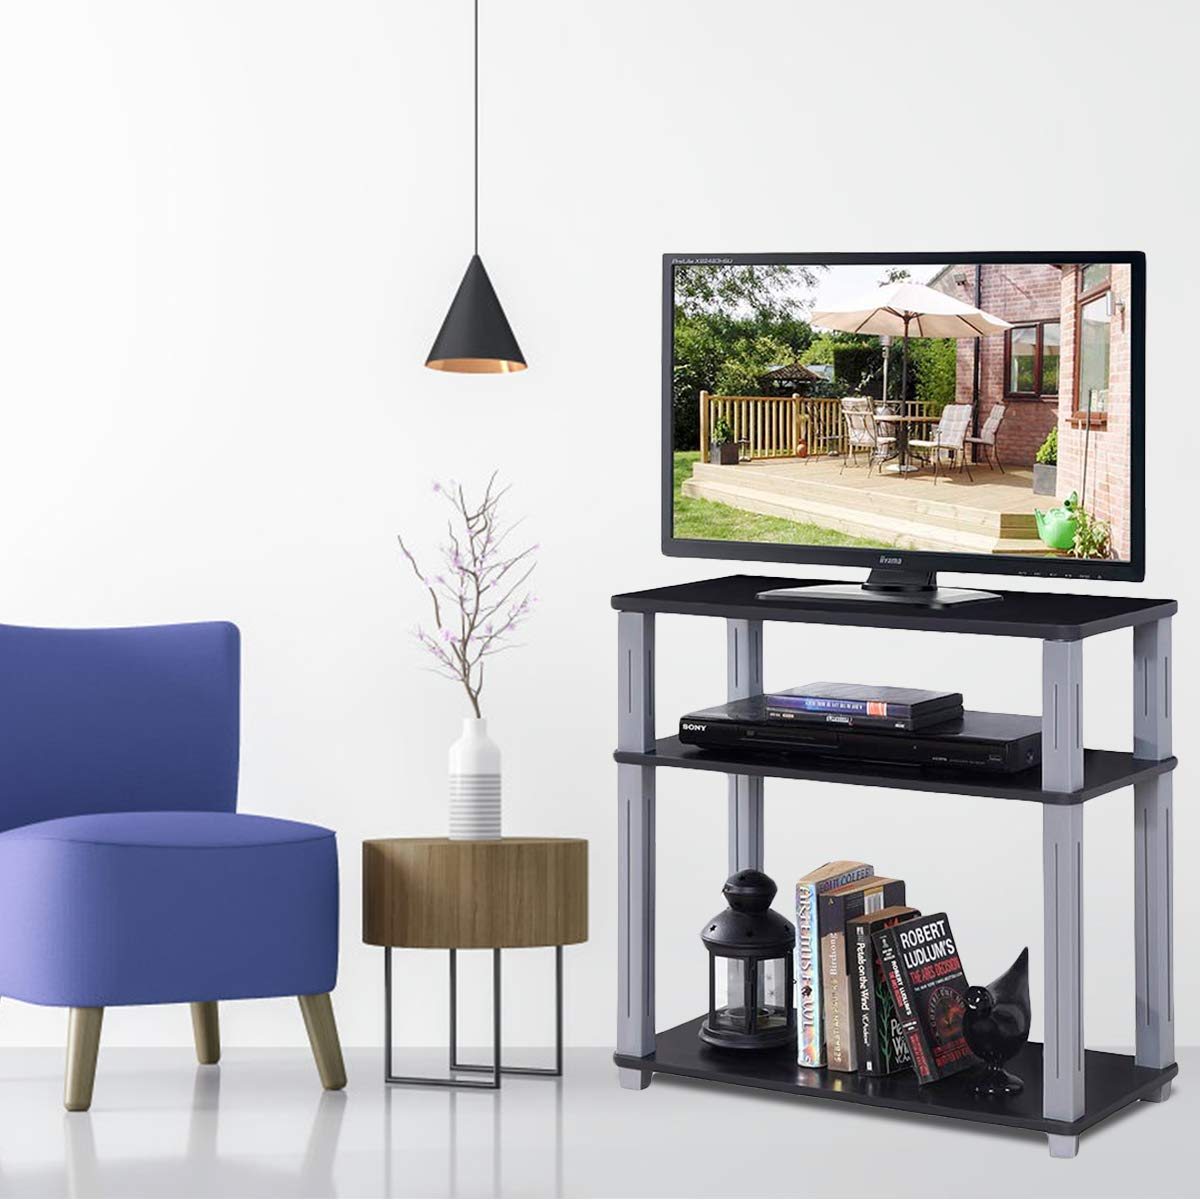 Tangkula TV Stand, 3-Tier TV Stand Storage Console with Shelves for Home Office, Sturdy Stable Construction Display Cabinet, TV Entertainment Center Console Black